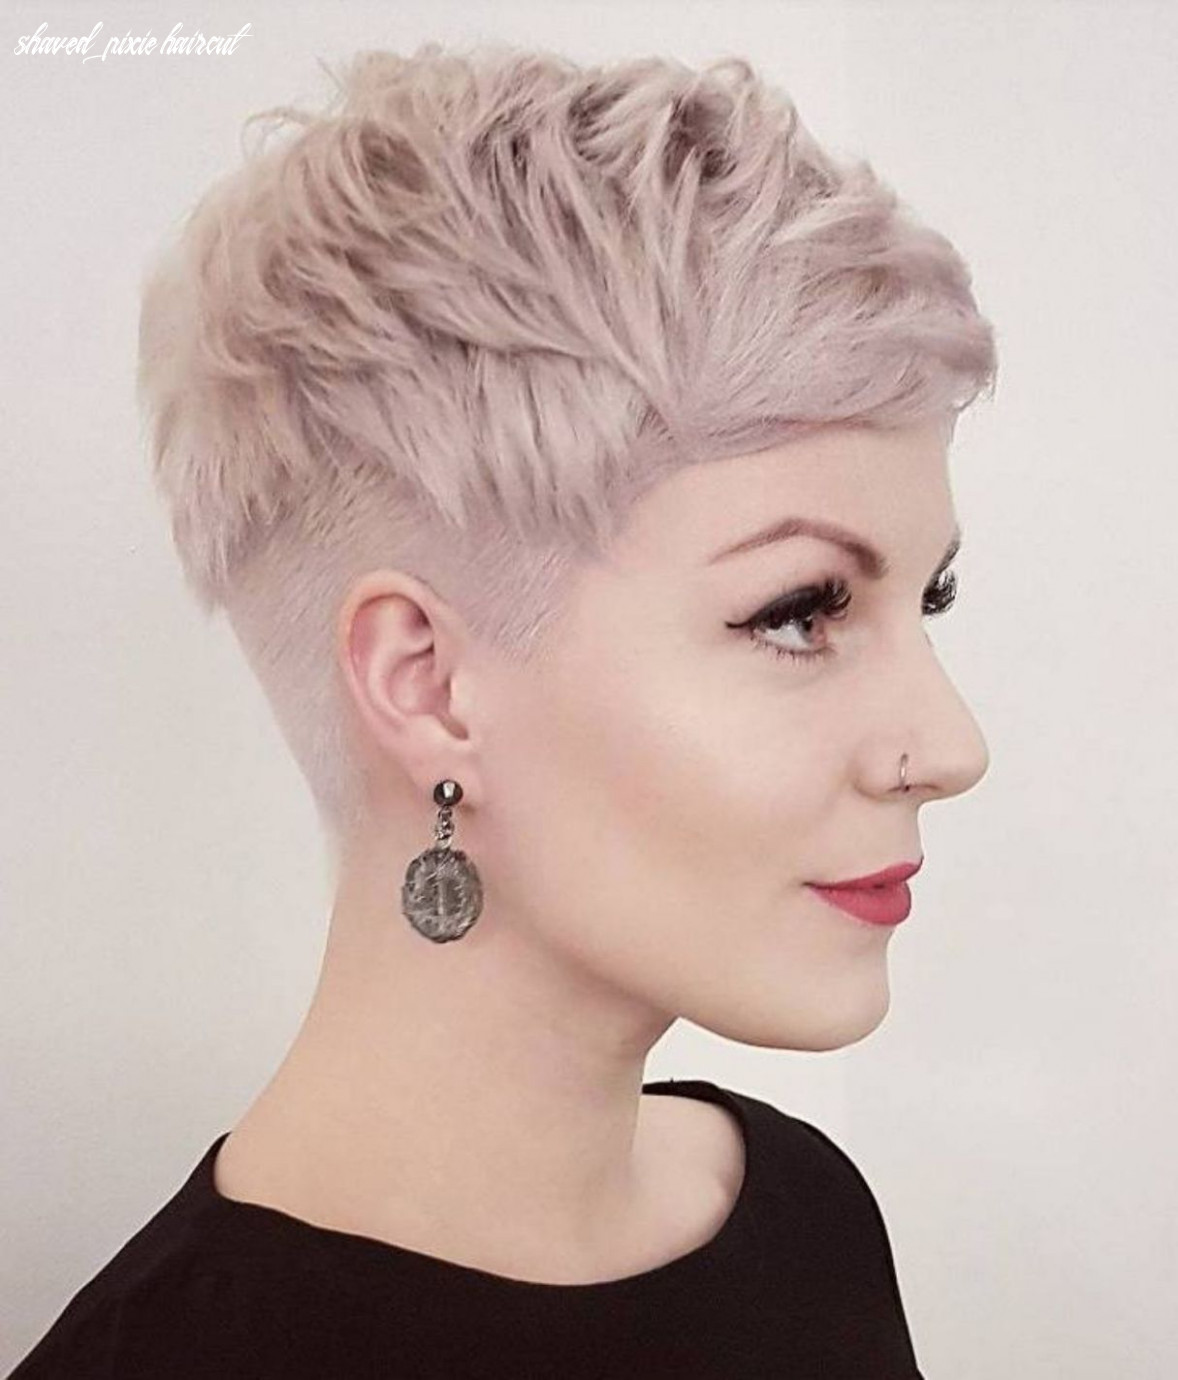 Pin on pixie ✂️ shaved pixie haircut